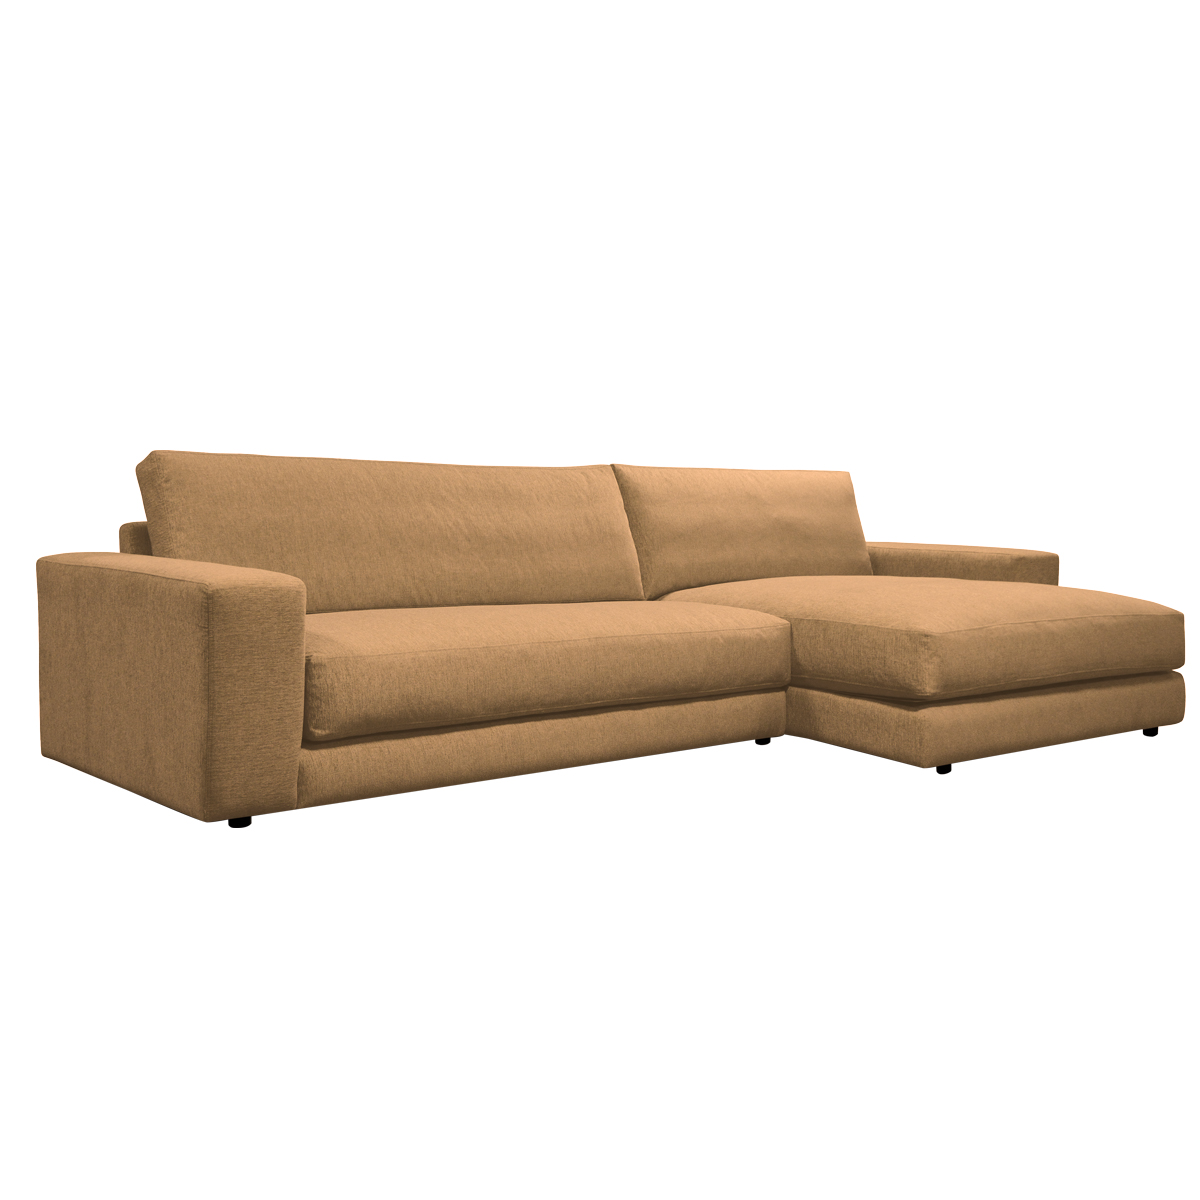 Hansen chaise sofa cam interiors for Chaise furniture